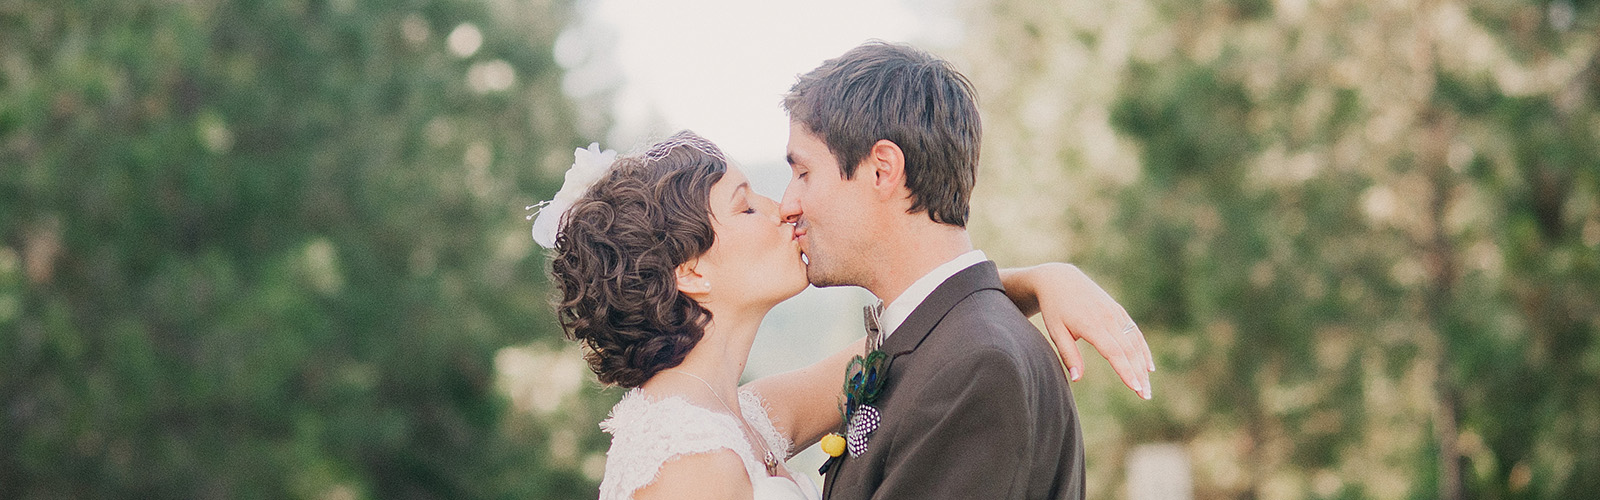 Portland Wedding Photographer Reviews - Megan and Adam's McCloud Mercantile Wedding